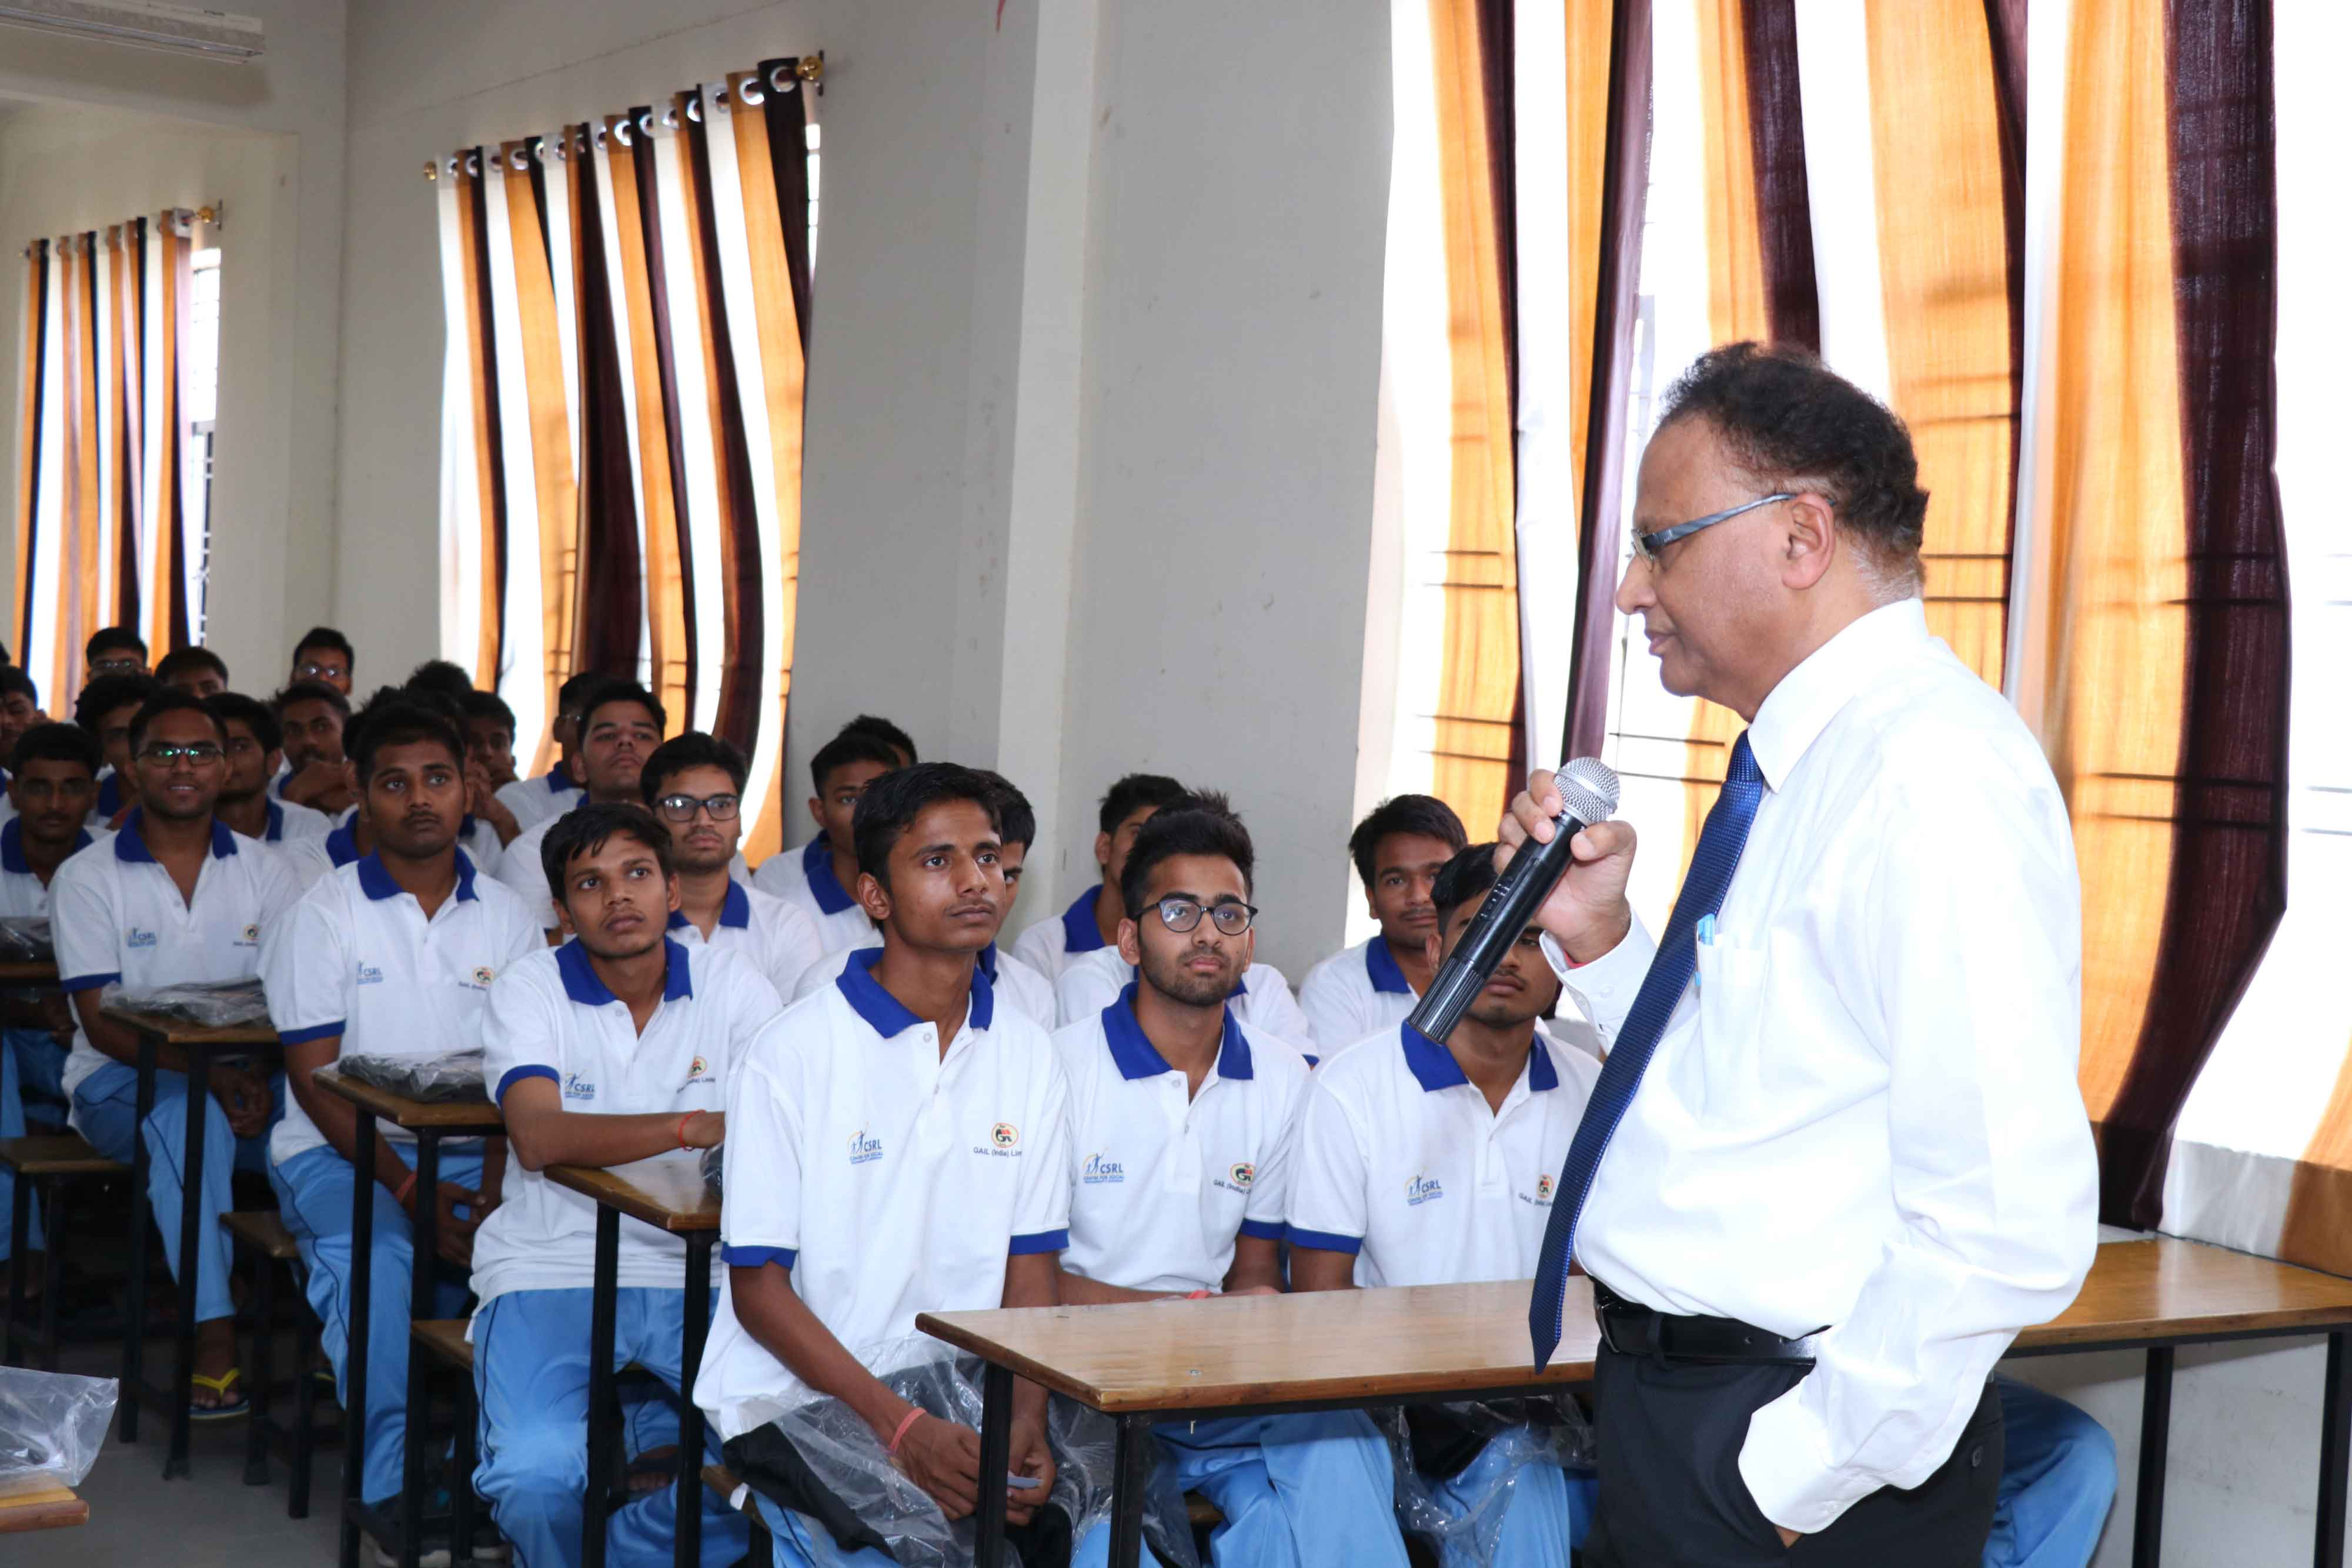 Director-(HR)-interacting-with-students